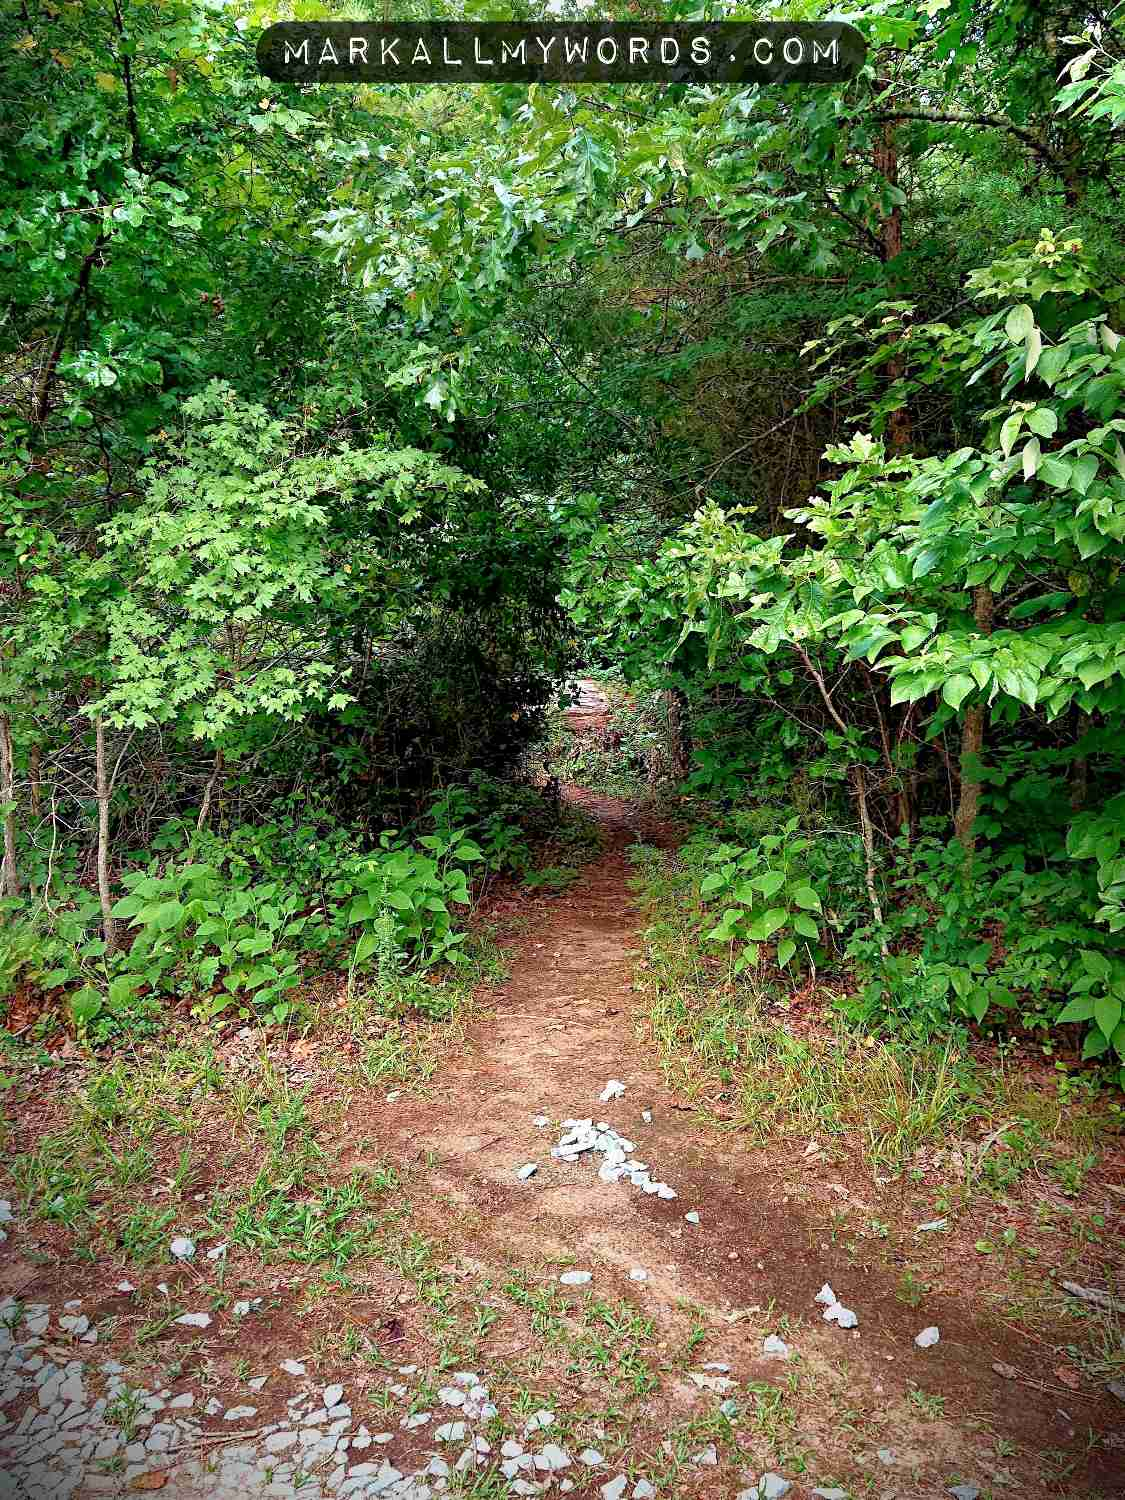 Trail through woods